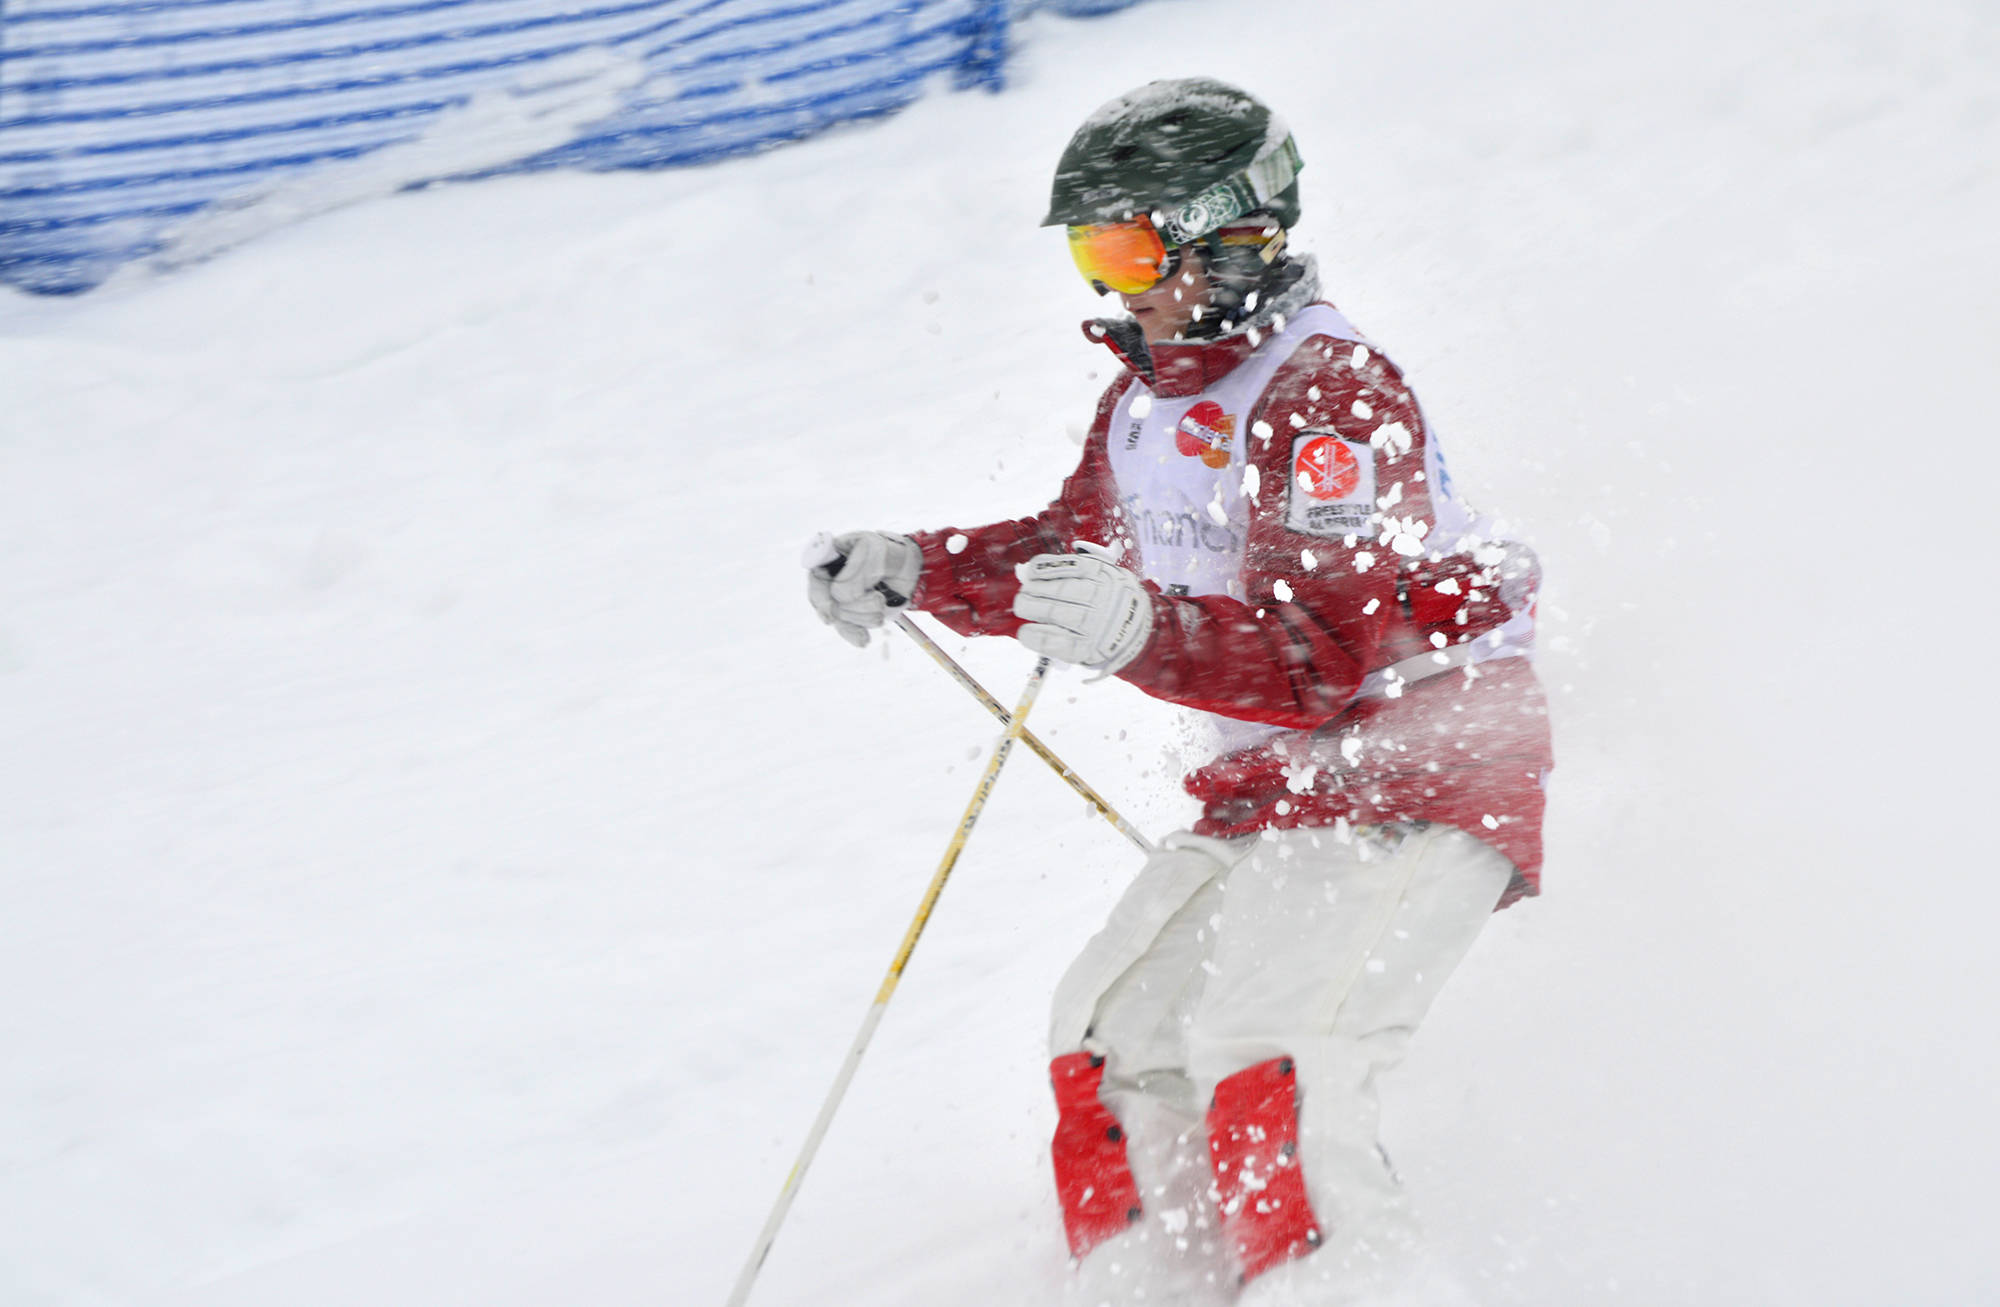 Jack Sadler competes in the under 16 division during the Provincial Moguls in Fernie in 2018. (Alexandra Heck - Black Press)